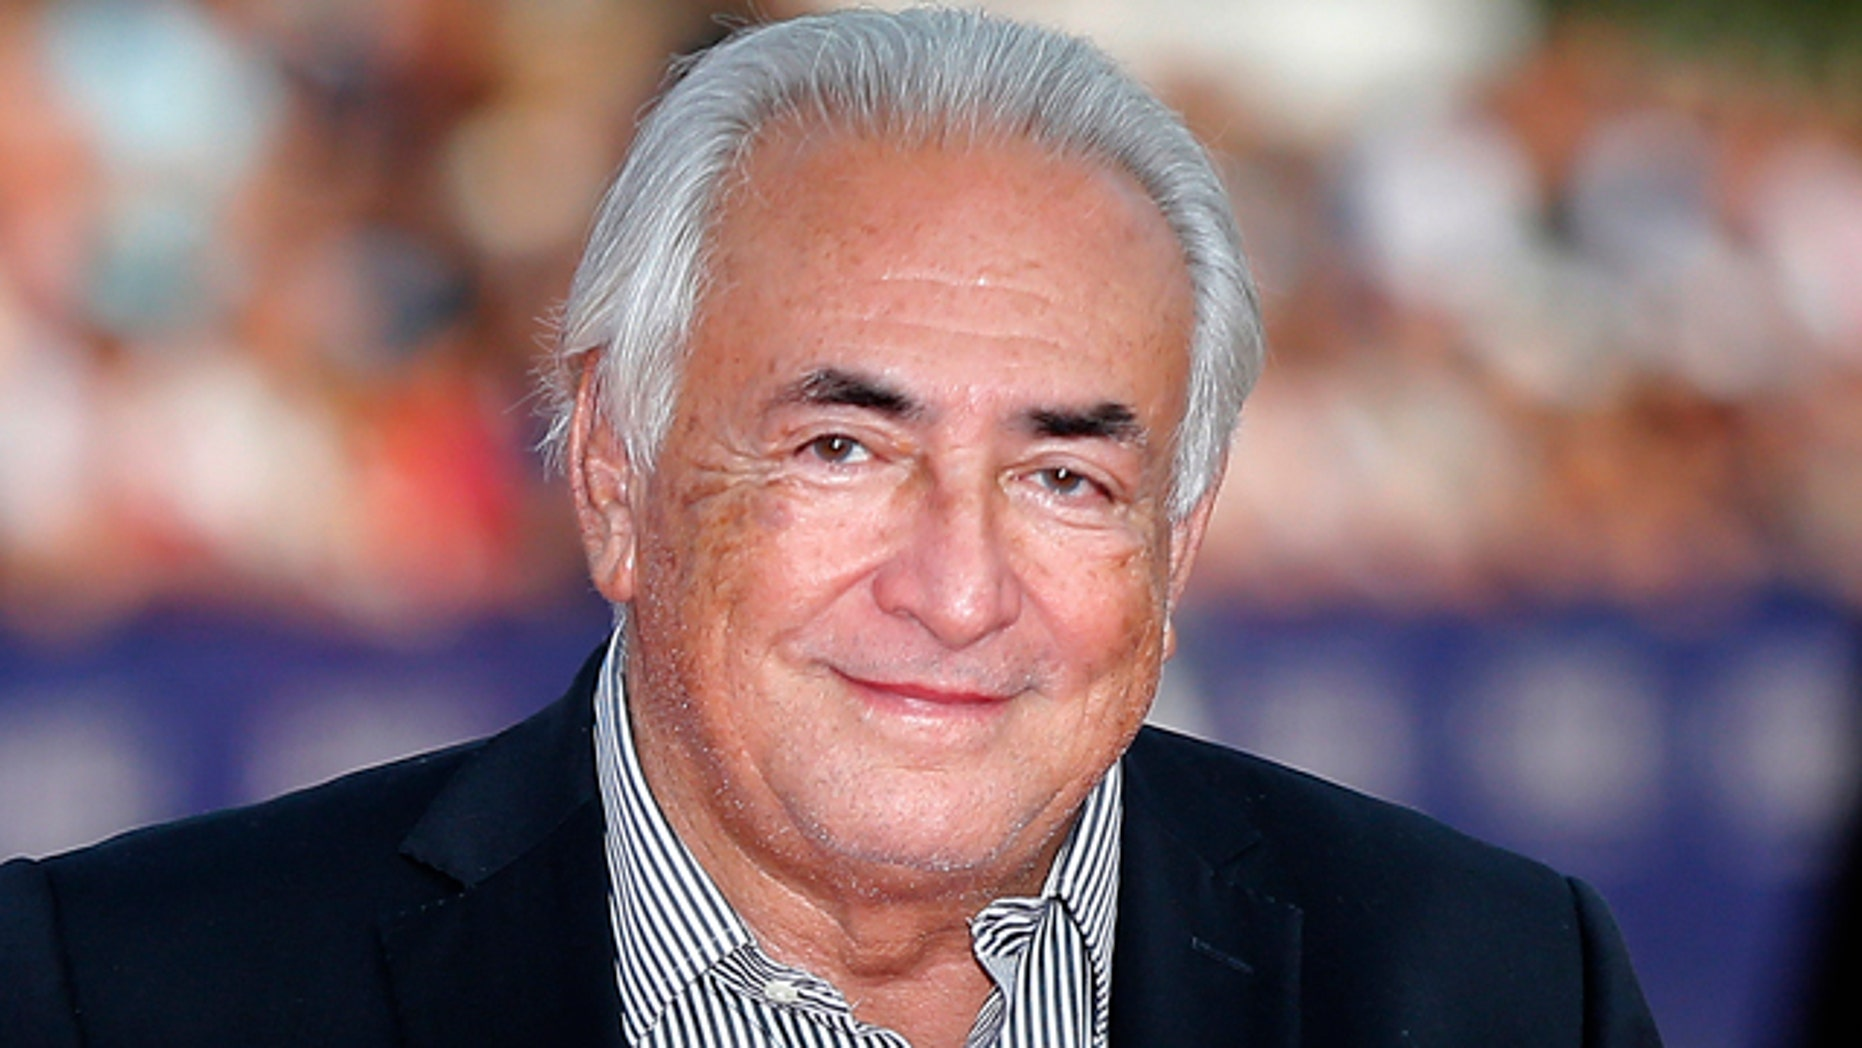 FILE - This Saturday, Sept. 13, 2014, file photo shows former IMF Secretary General Dominique Strauss-Kahn arriving for the award ceremony at the 40th American Film Festival in Deauville, Normandy, western France. (AP Photo/Jacques Brinon, File)